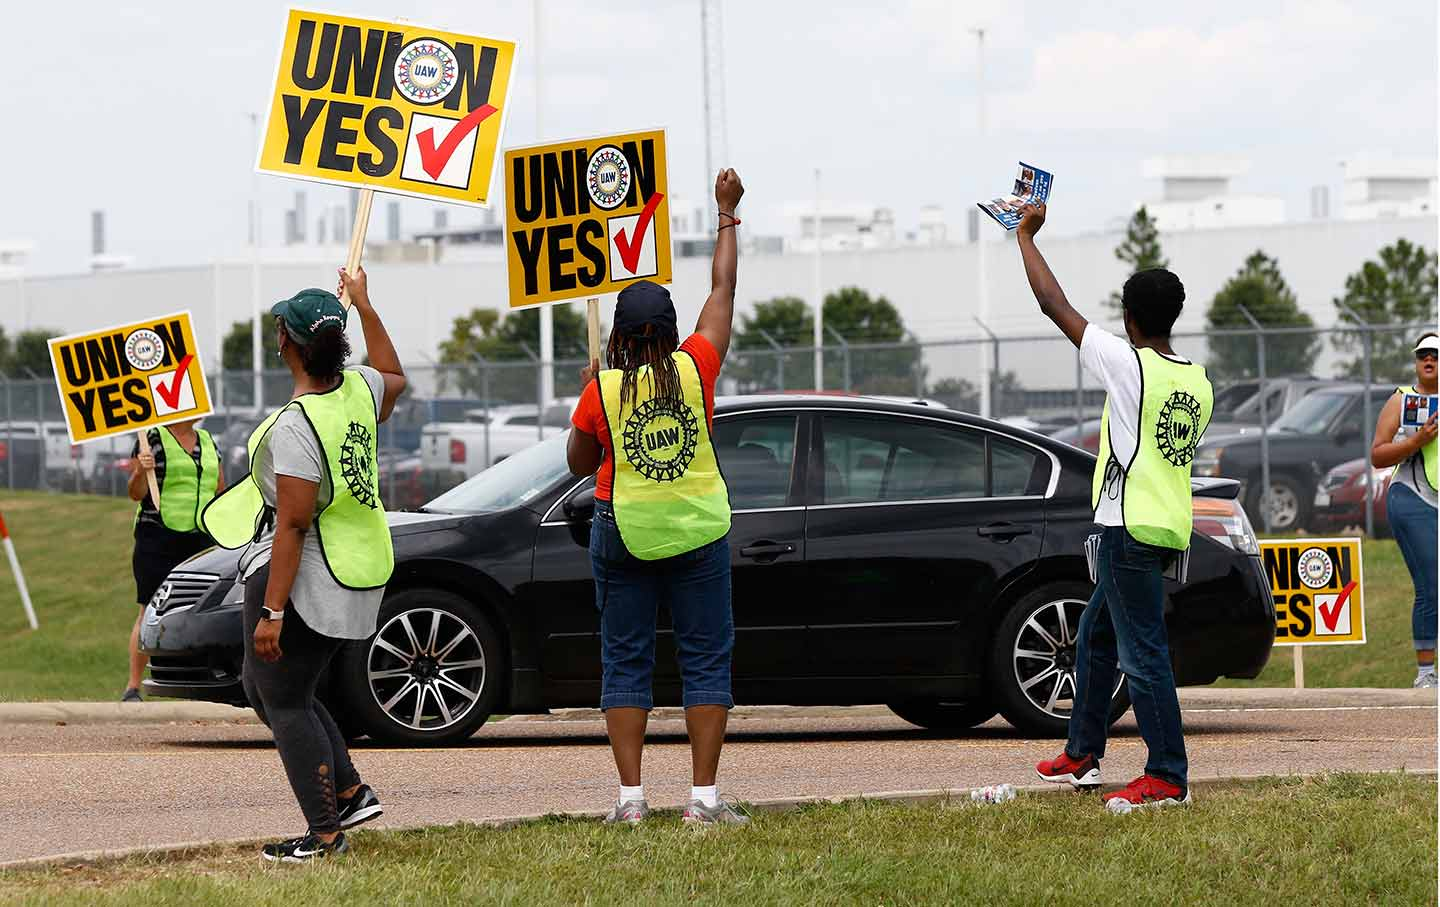 UAW members outside the Nissan plant